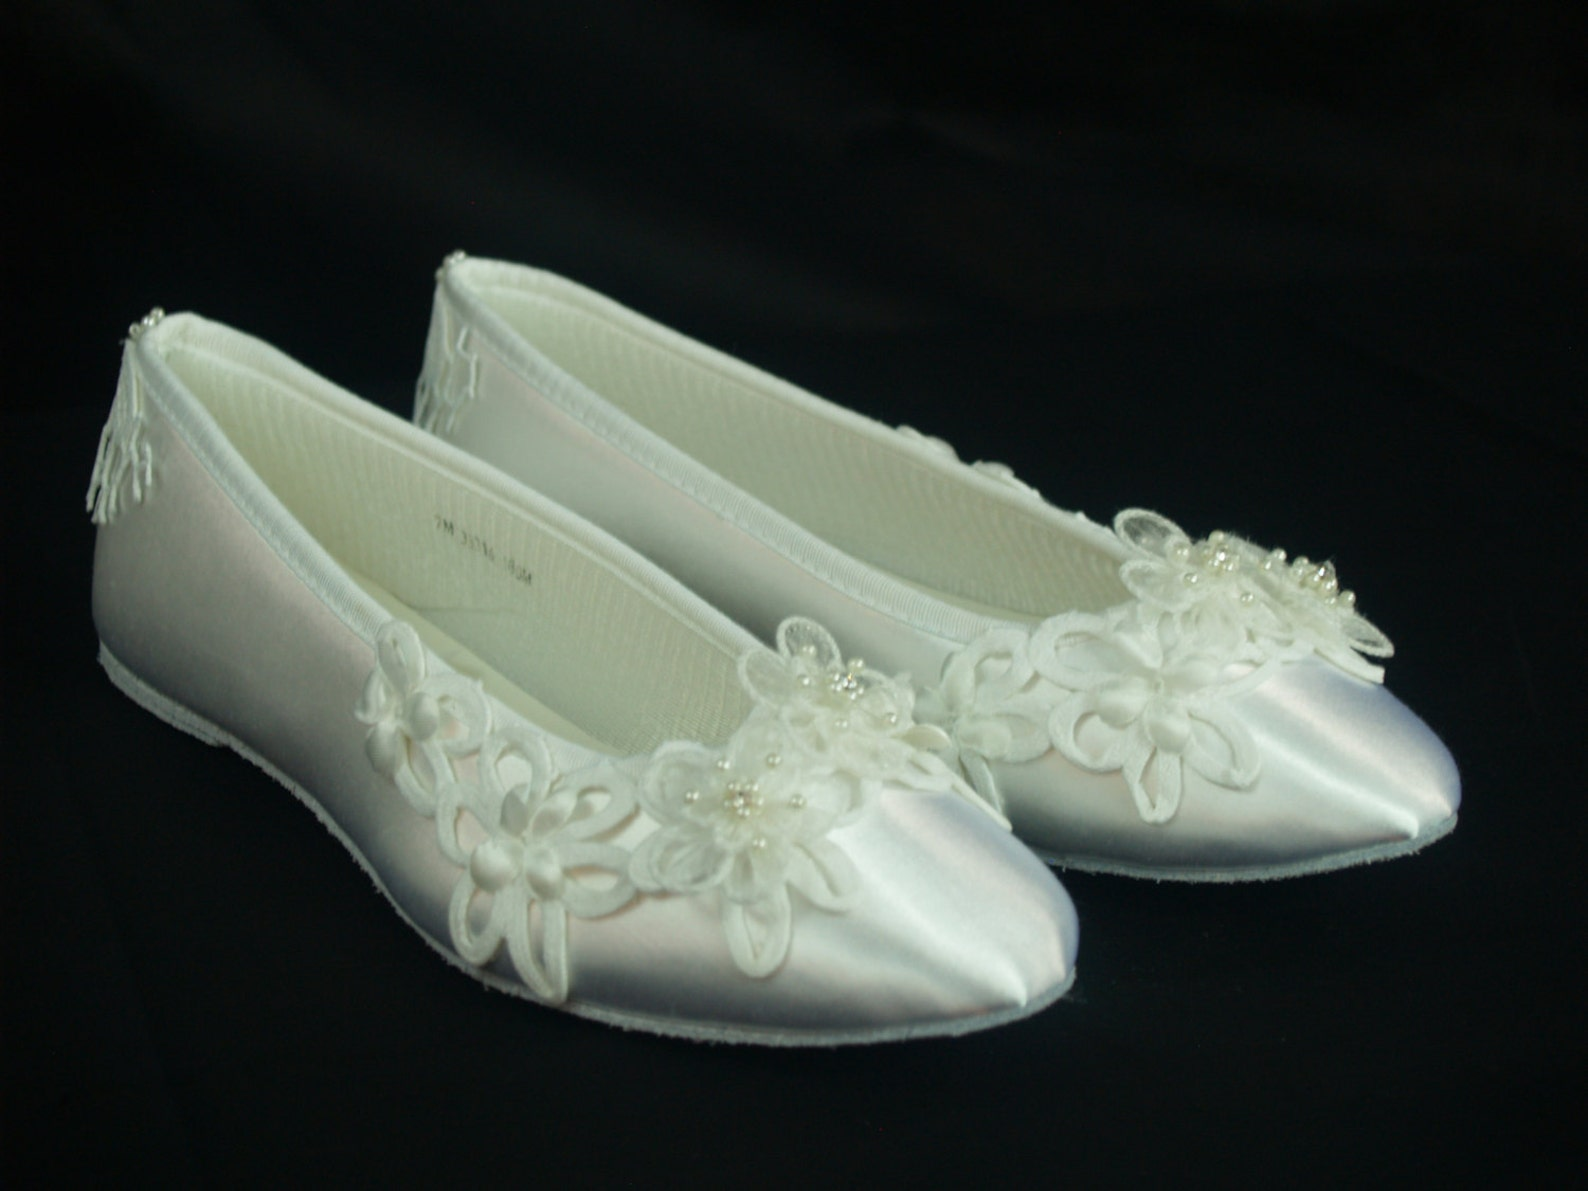 size 7 brides wedding flats battenburg lace white, ballet style slipper, romantic, satin flats, lace wedding, country chic,ready